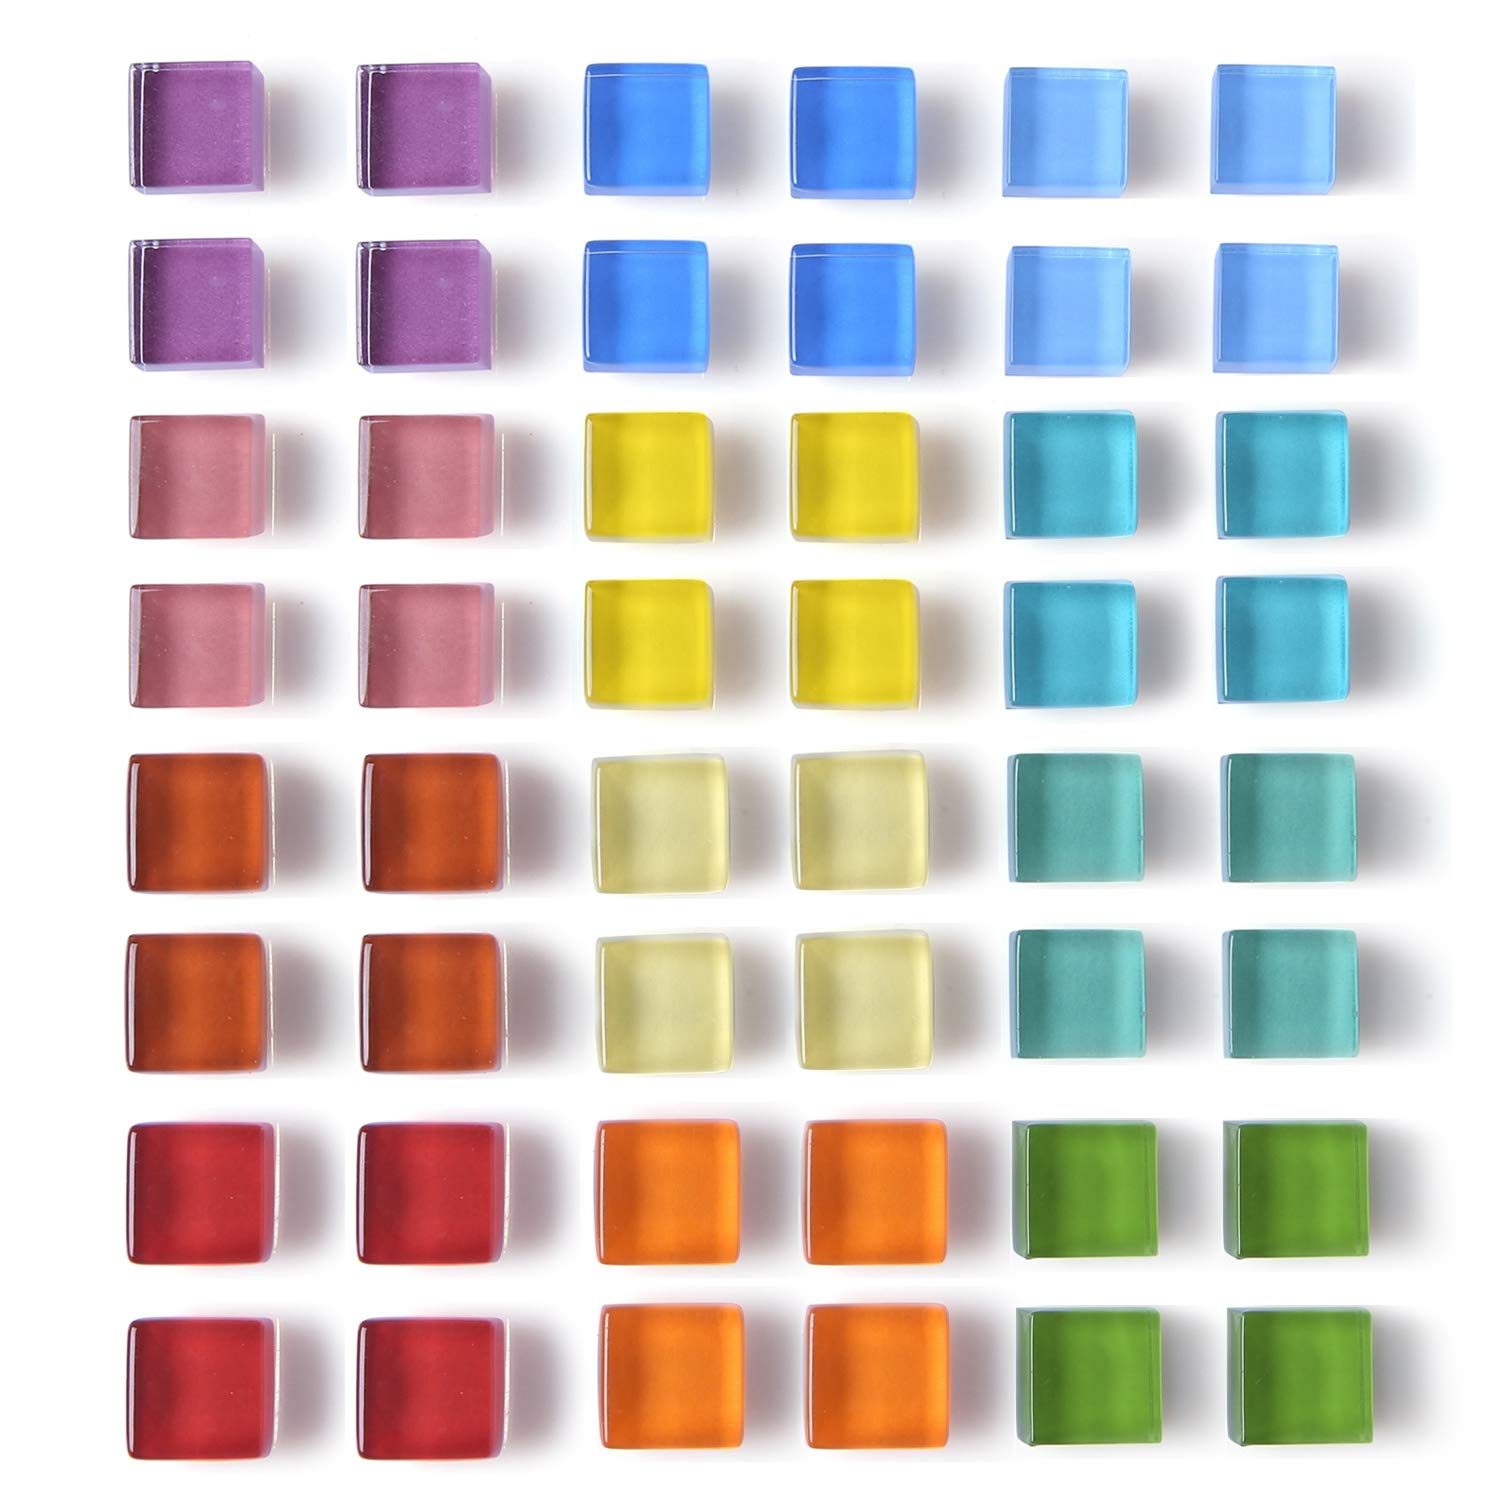 48 Pack Glass Refrigerator Magnets for Fridge Cute Magnets Color Decorative Magnets for Office Locker Magnets for Whiteboard